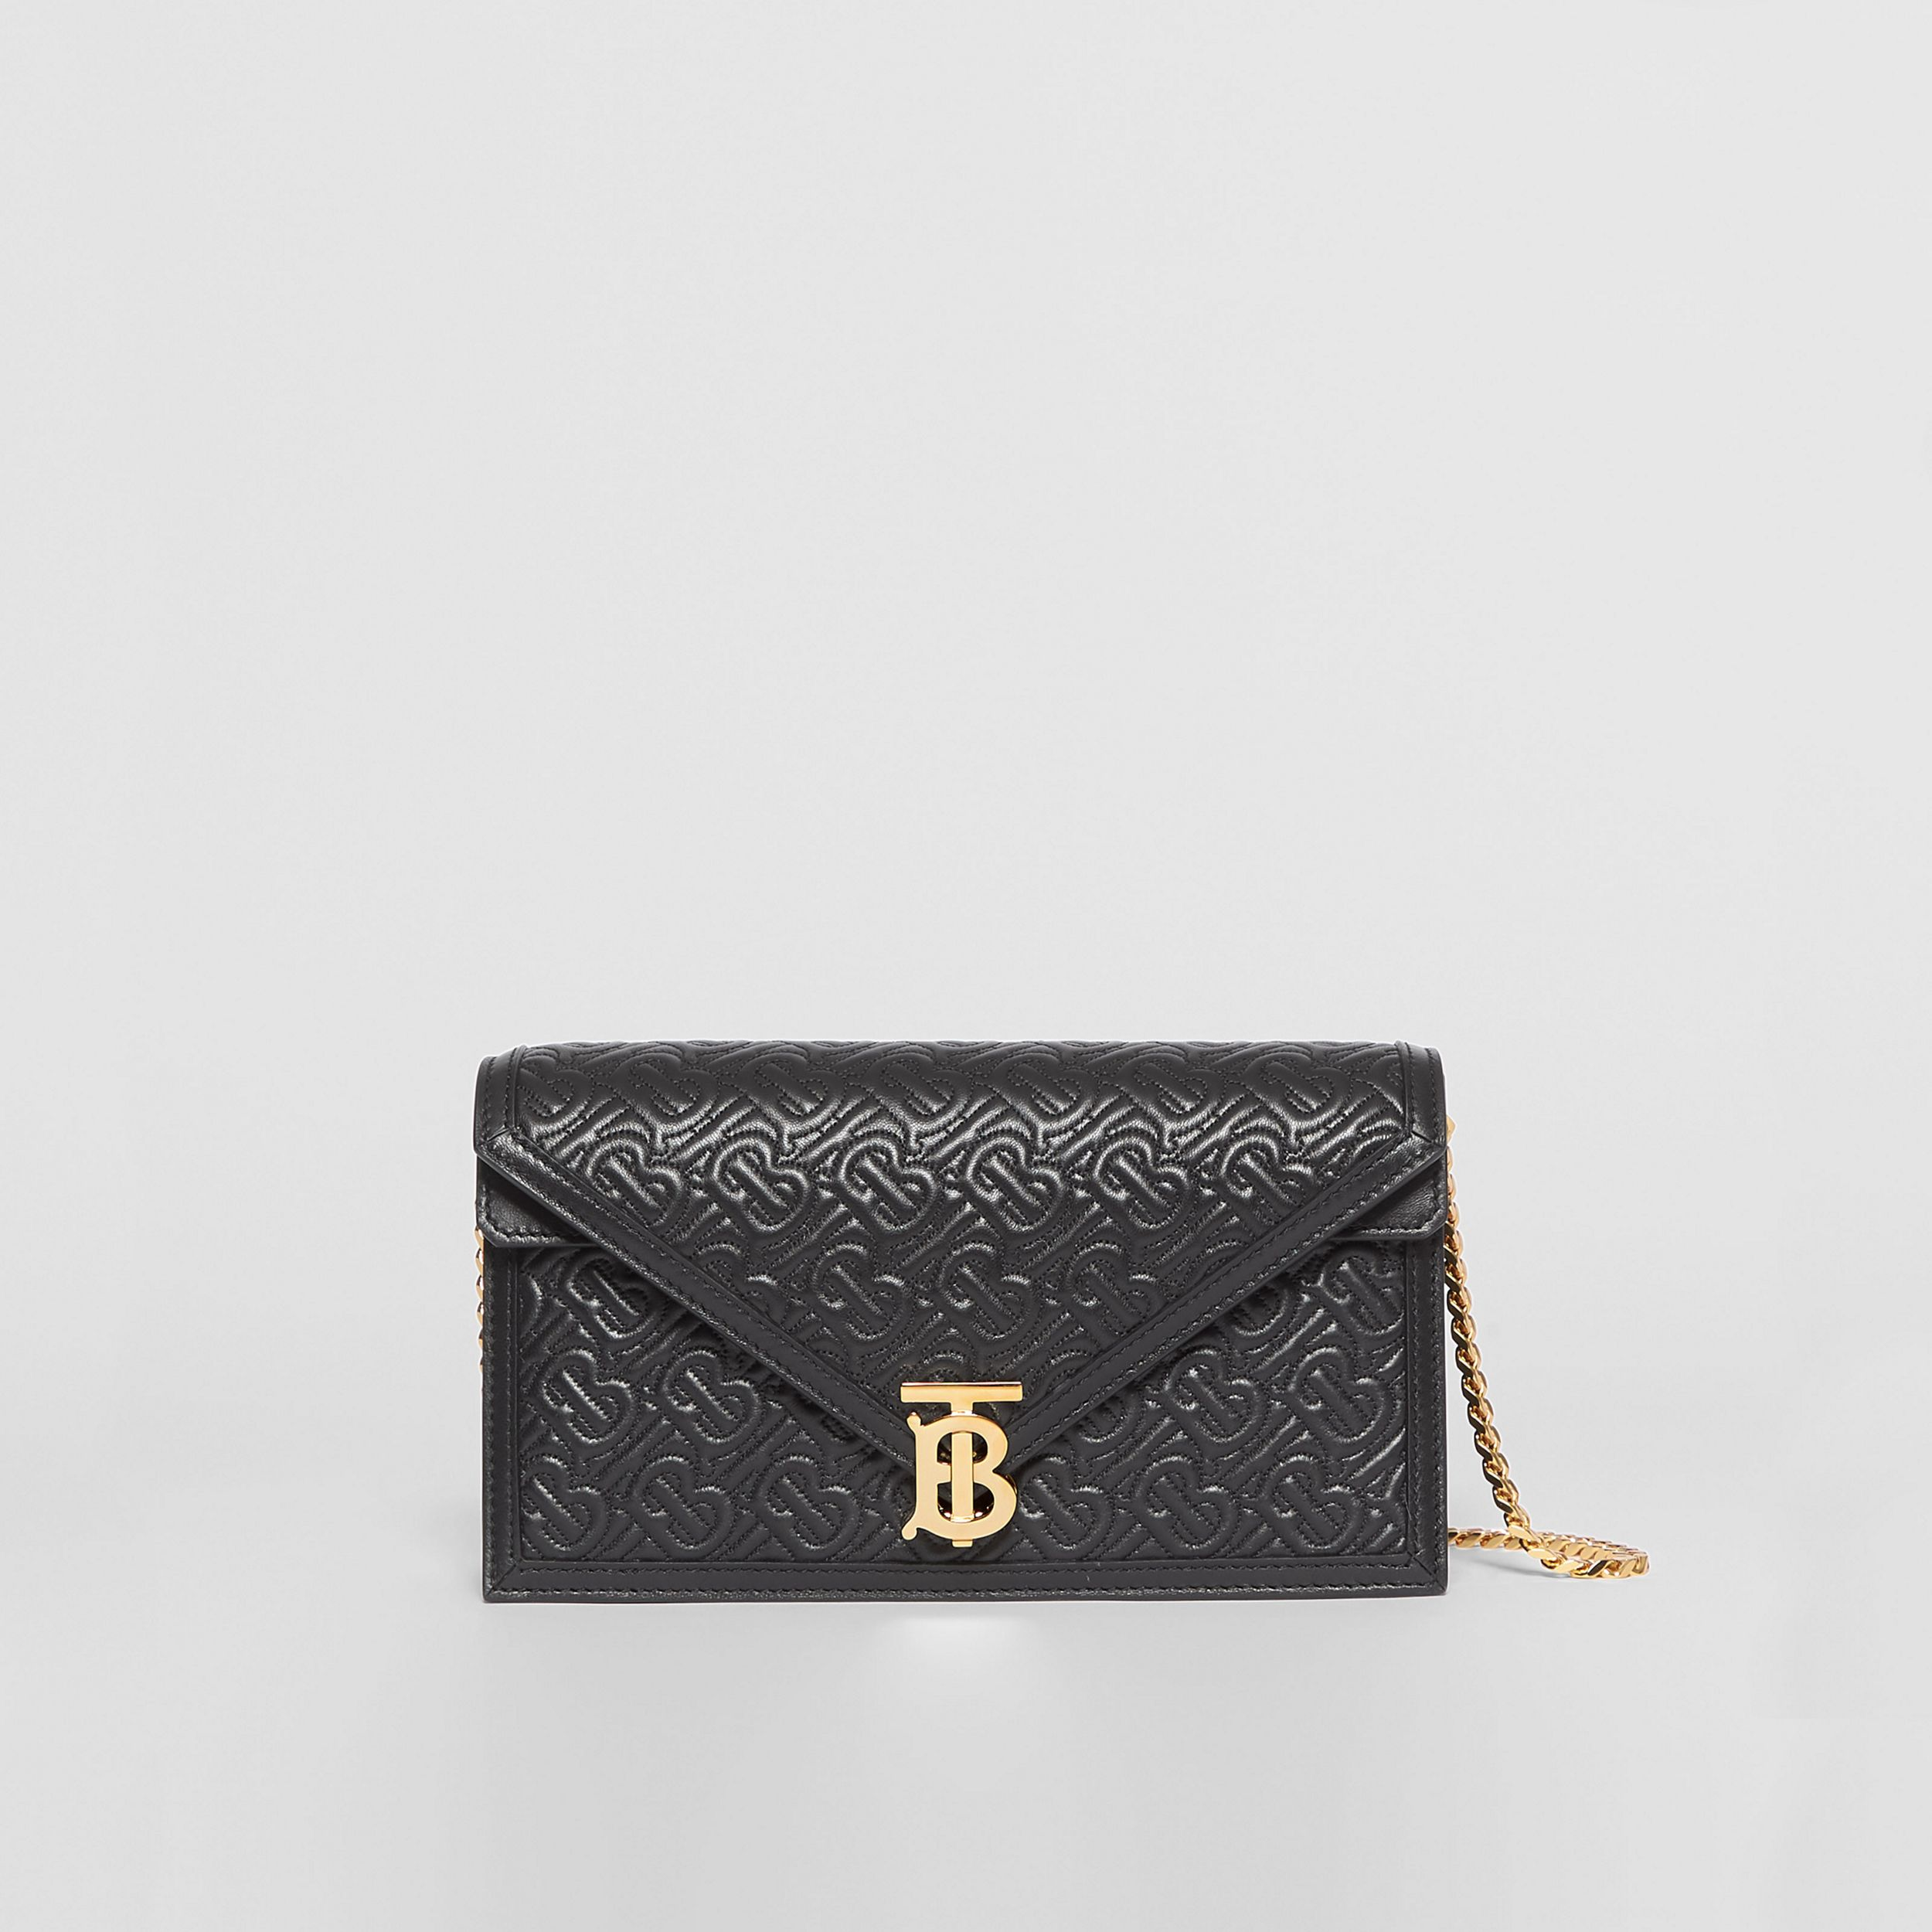 Small Quilted Monogram TB Envelope Clutch in Black - Women | Burberry - 1